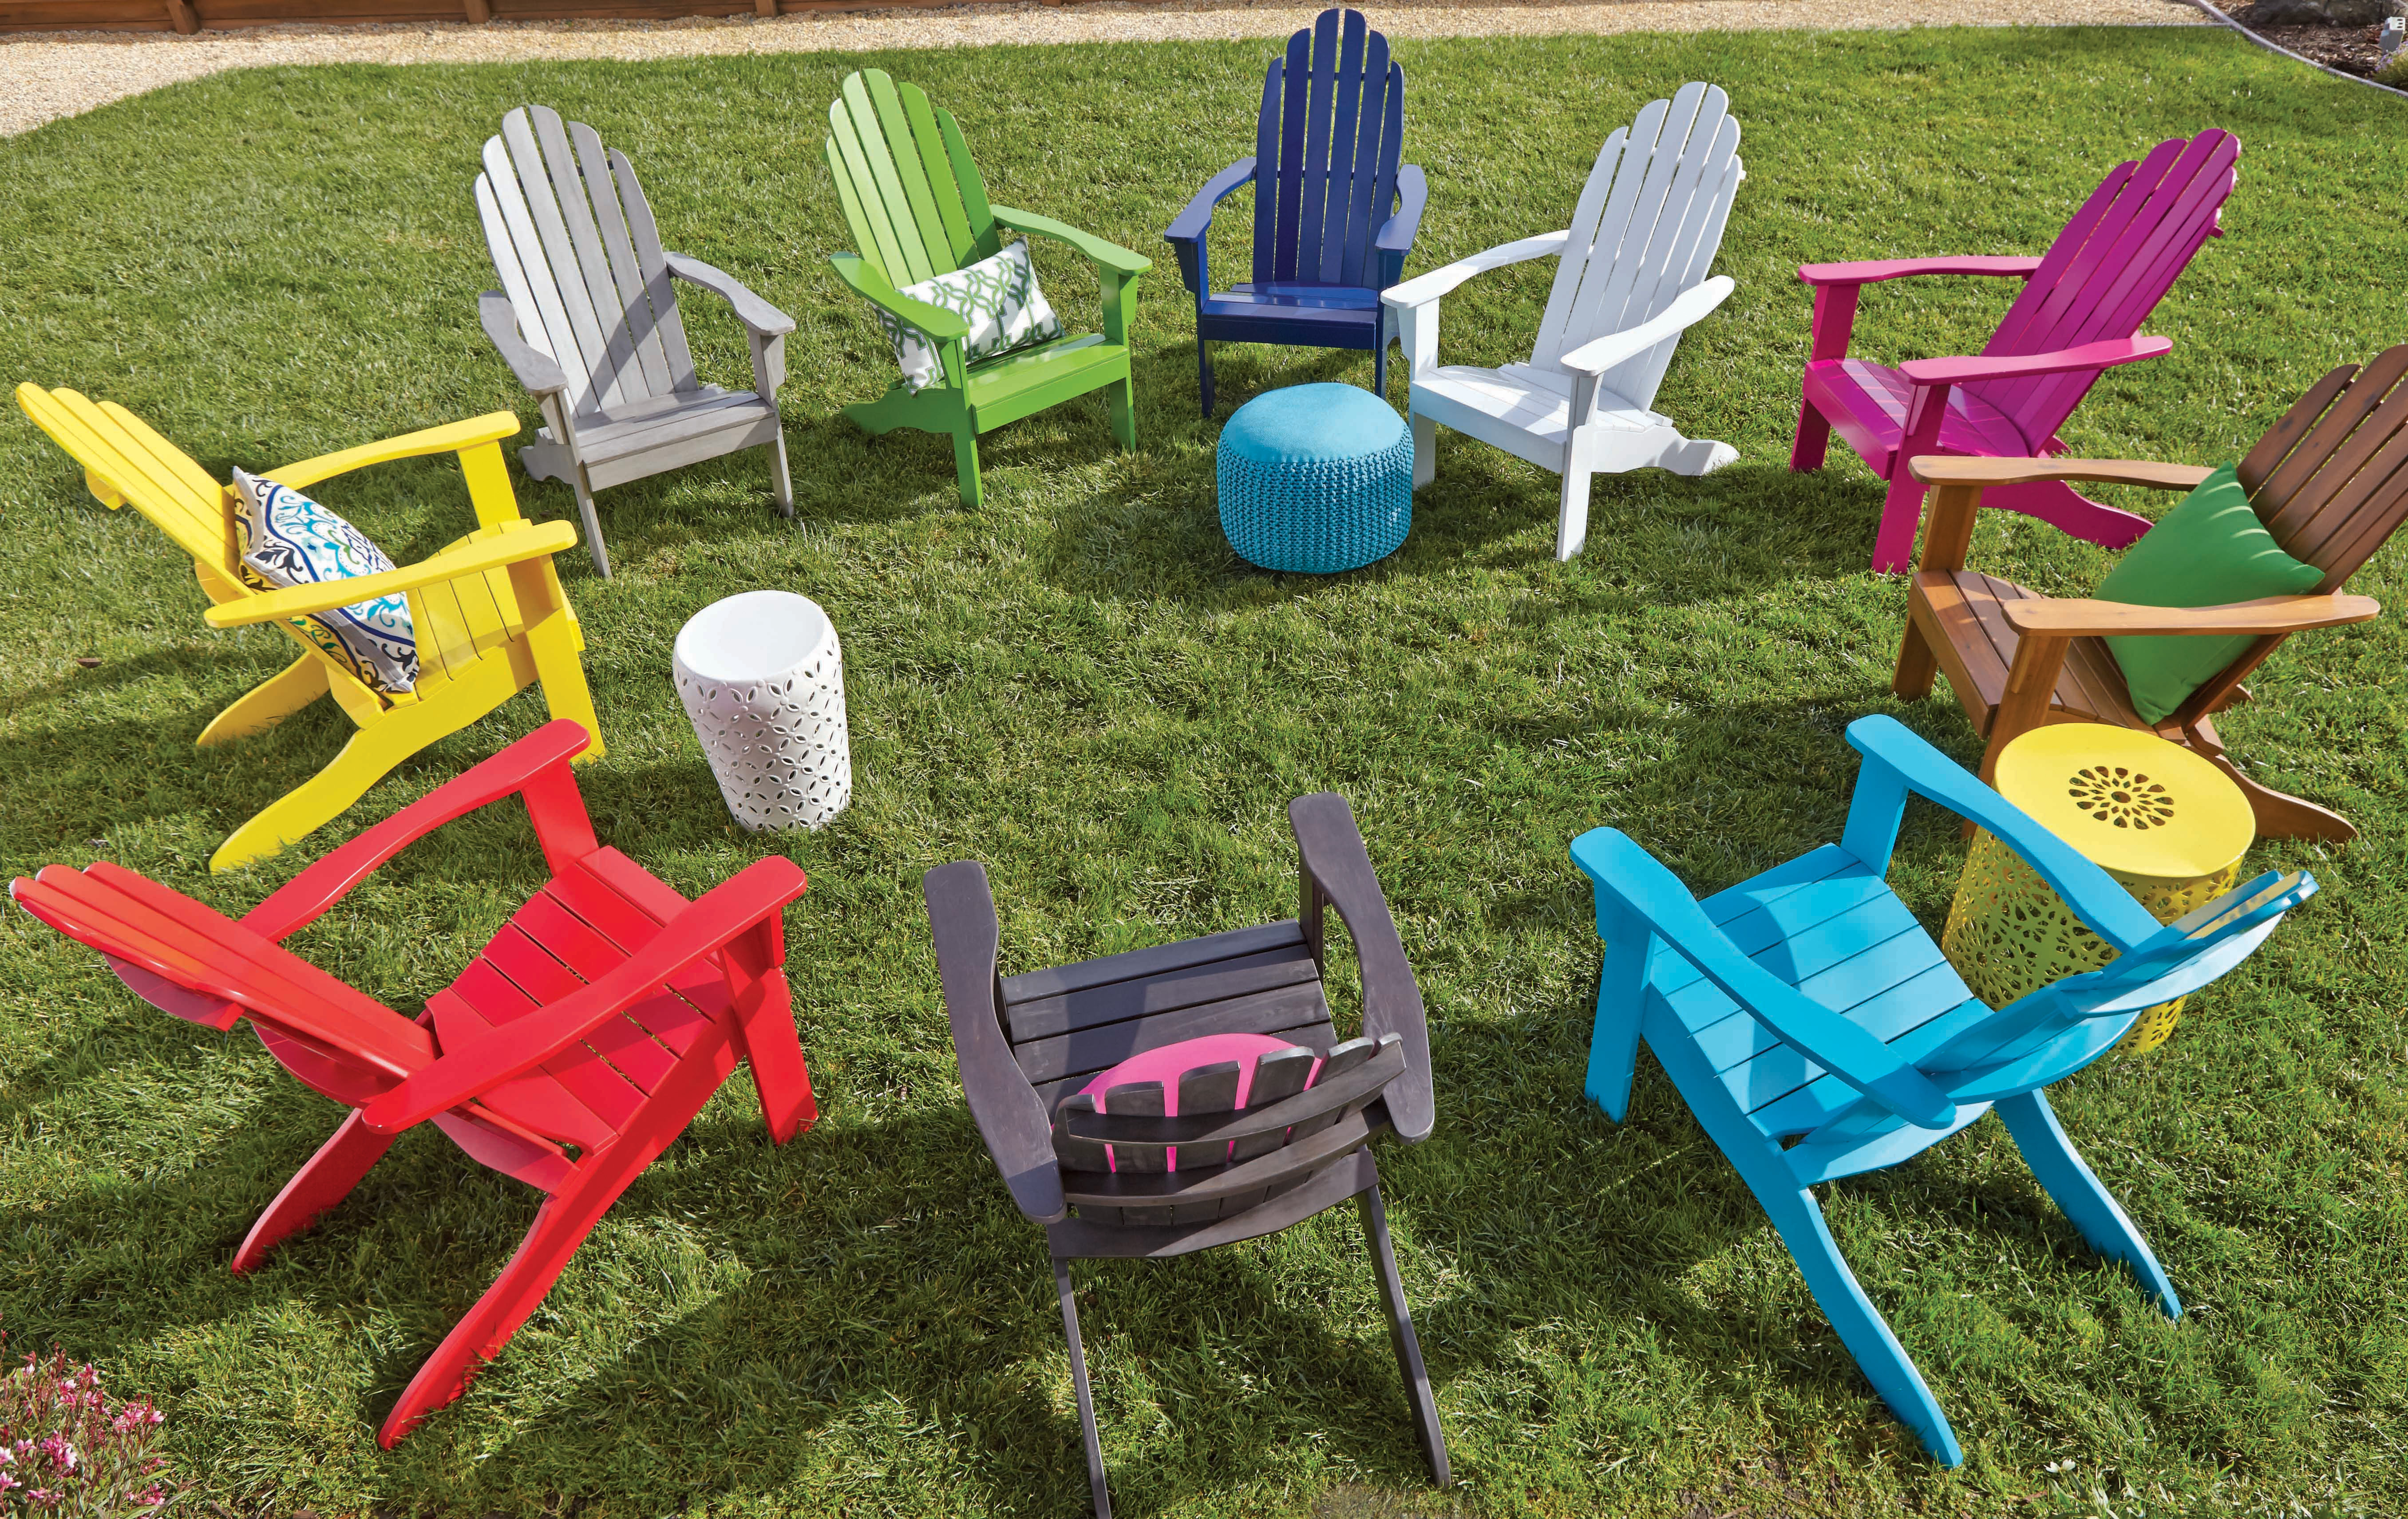 Cost Plus World Market Makes Outdoor Entertaining Easy and